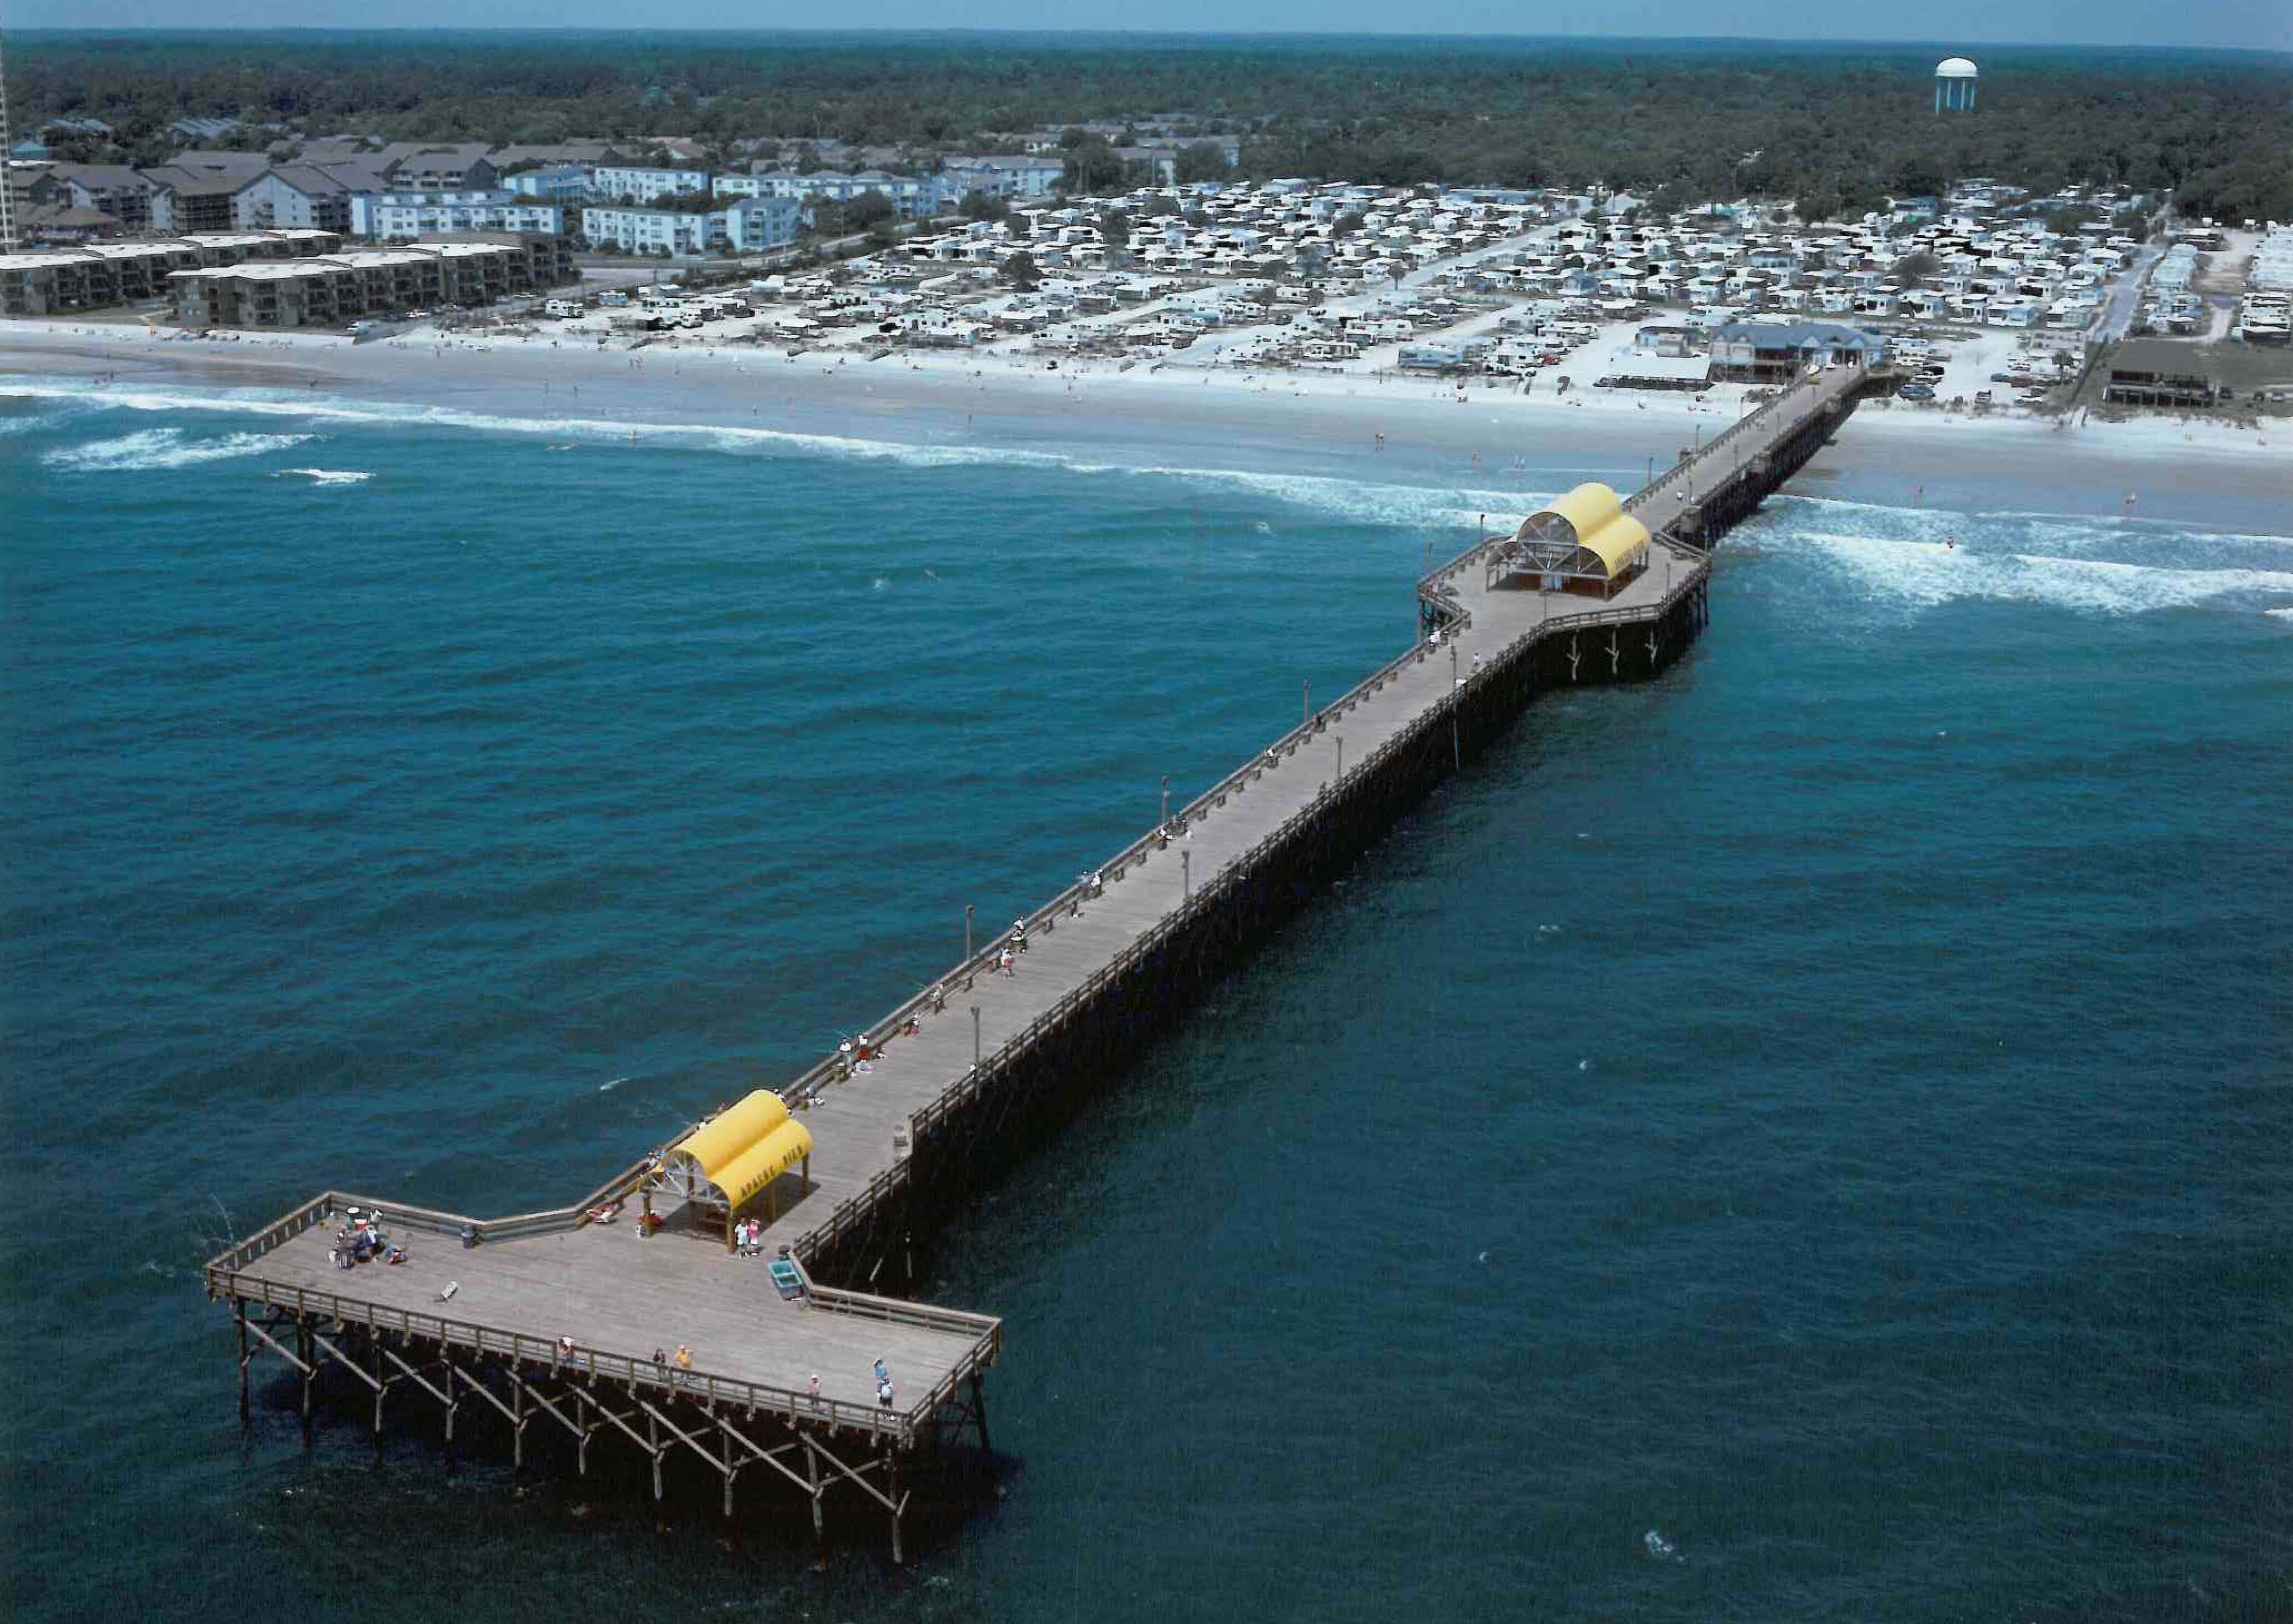 Myrtle Beach Piers Fishing The Best Beaches In World